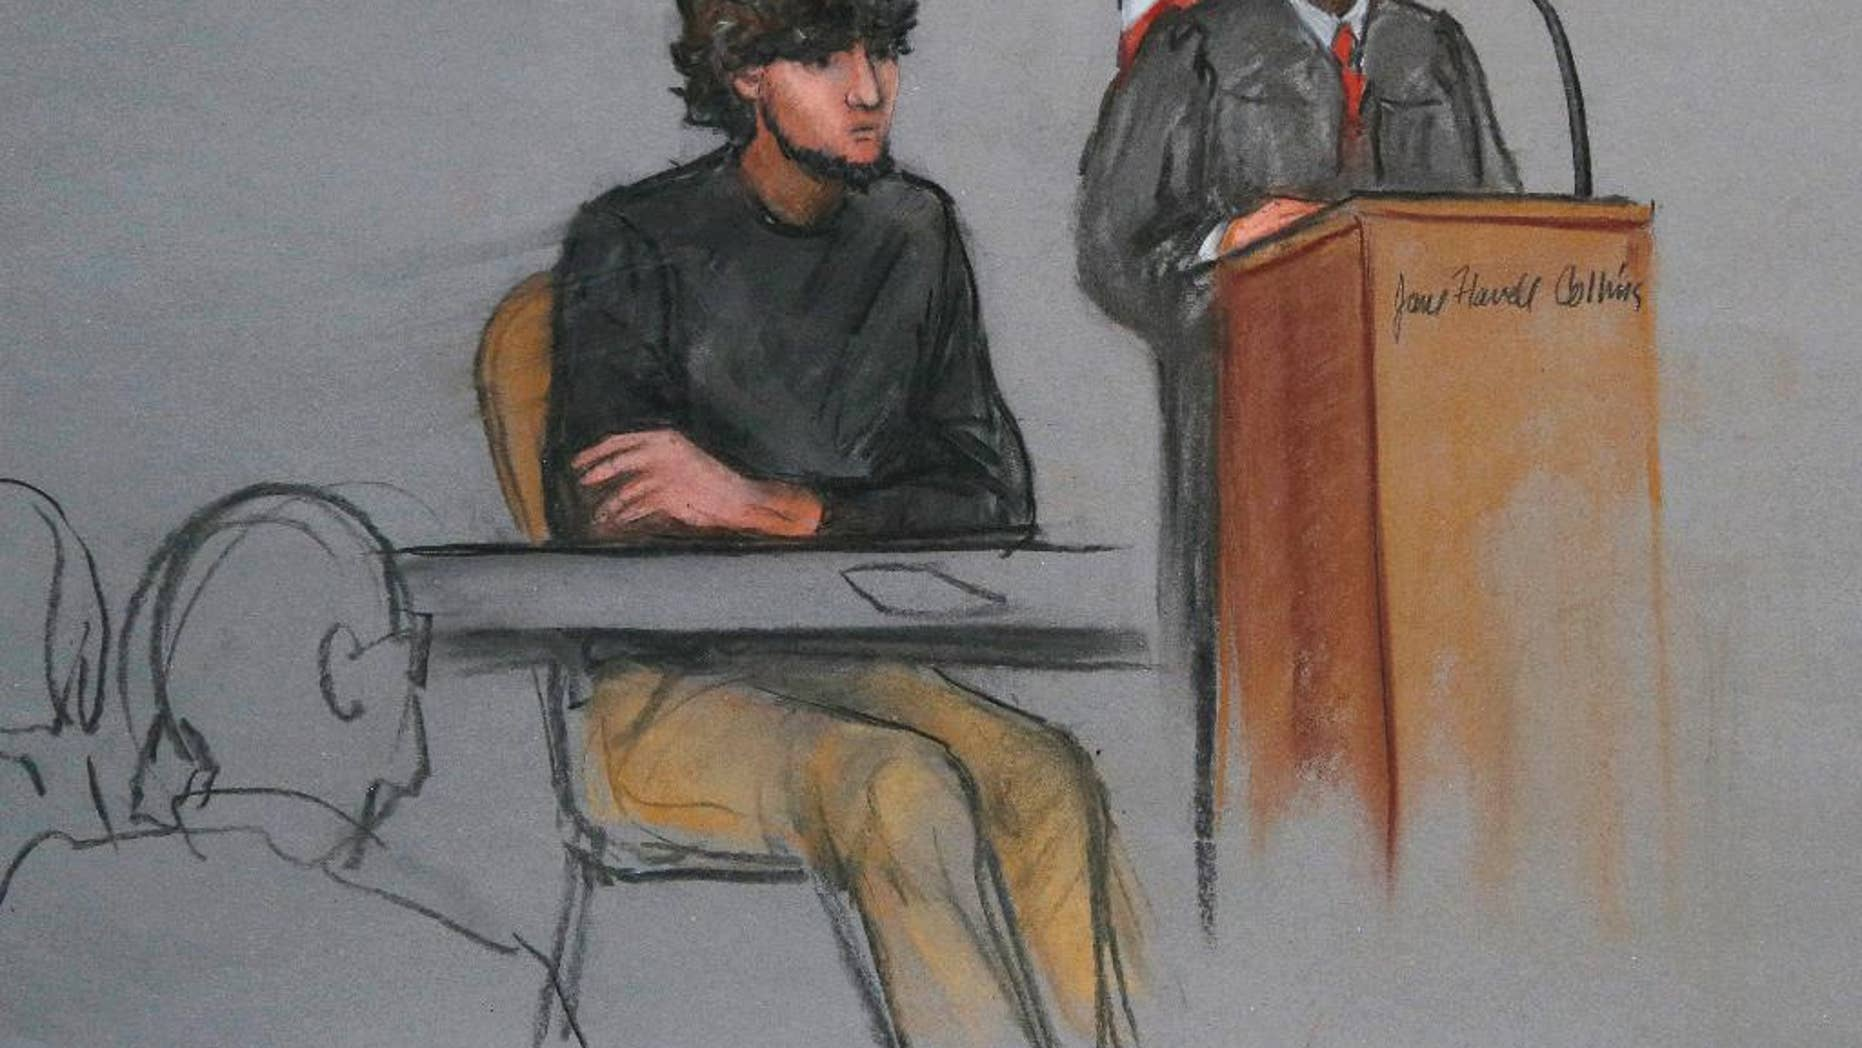 In this courtroom sketch, Boston Marathon bombing suspect Dzhokhar Tsarnaev, left, is depicted beside U.S. District Judge George O'Toole Jr., right, as O'Toole addresses a pool of potential jurors in a jury assembly room at the federal courthouse Monday, Jan. 5, 2015, in Boston. Tsarnaev is charged with the April 2013 attack that killed three people and injured more than 260. His trial is scheduled to begin on Jan. 26, 2015. He could face the death penalty if convicted.  (AP Photo/Jane Flavell Collins)